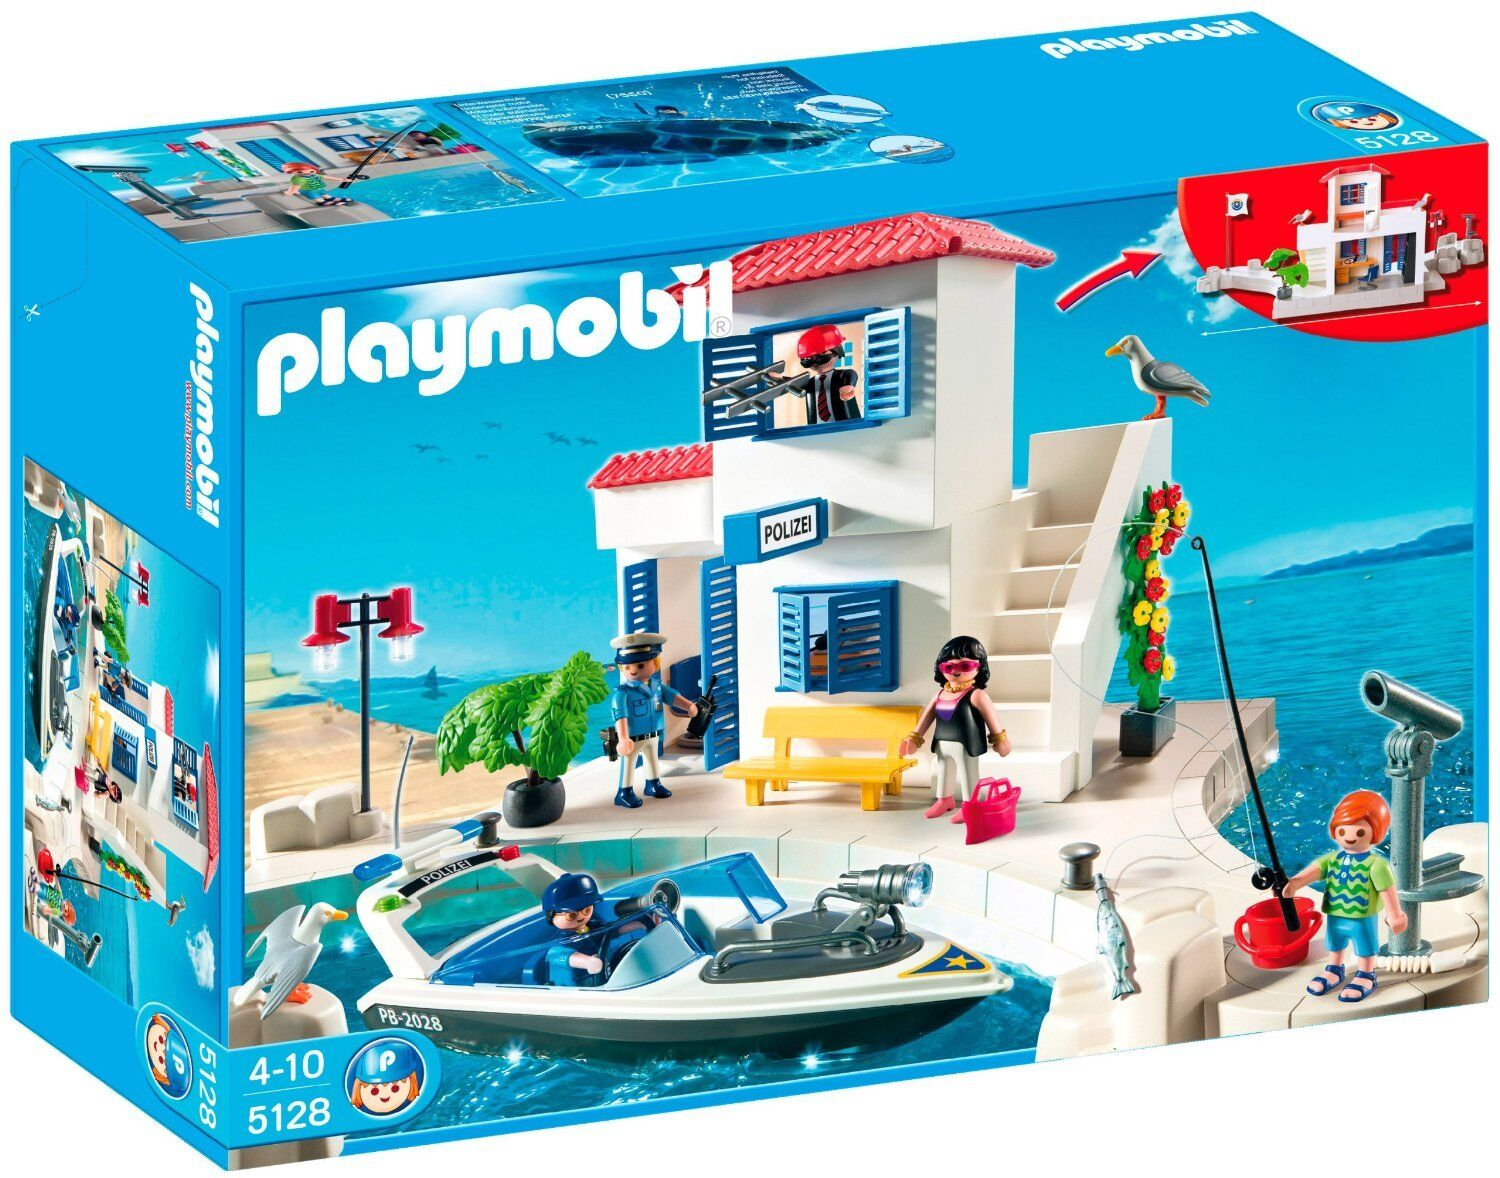 Playmobil Harbor Police Boat New sealed in box Rare hard to find Retired